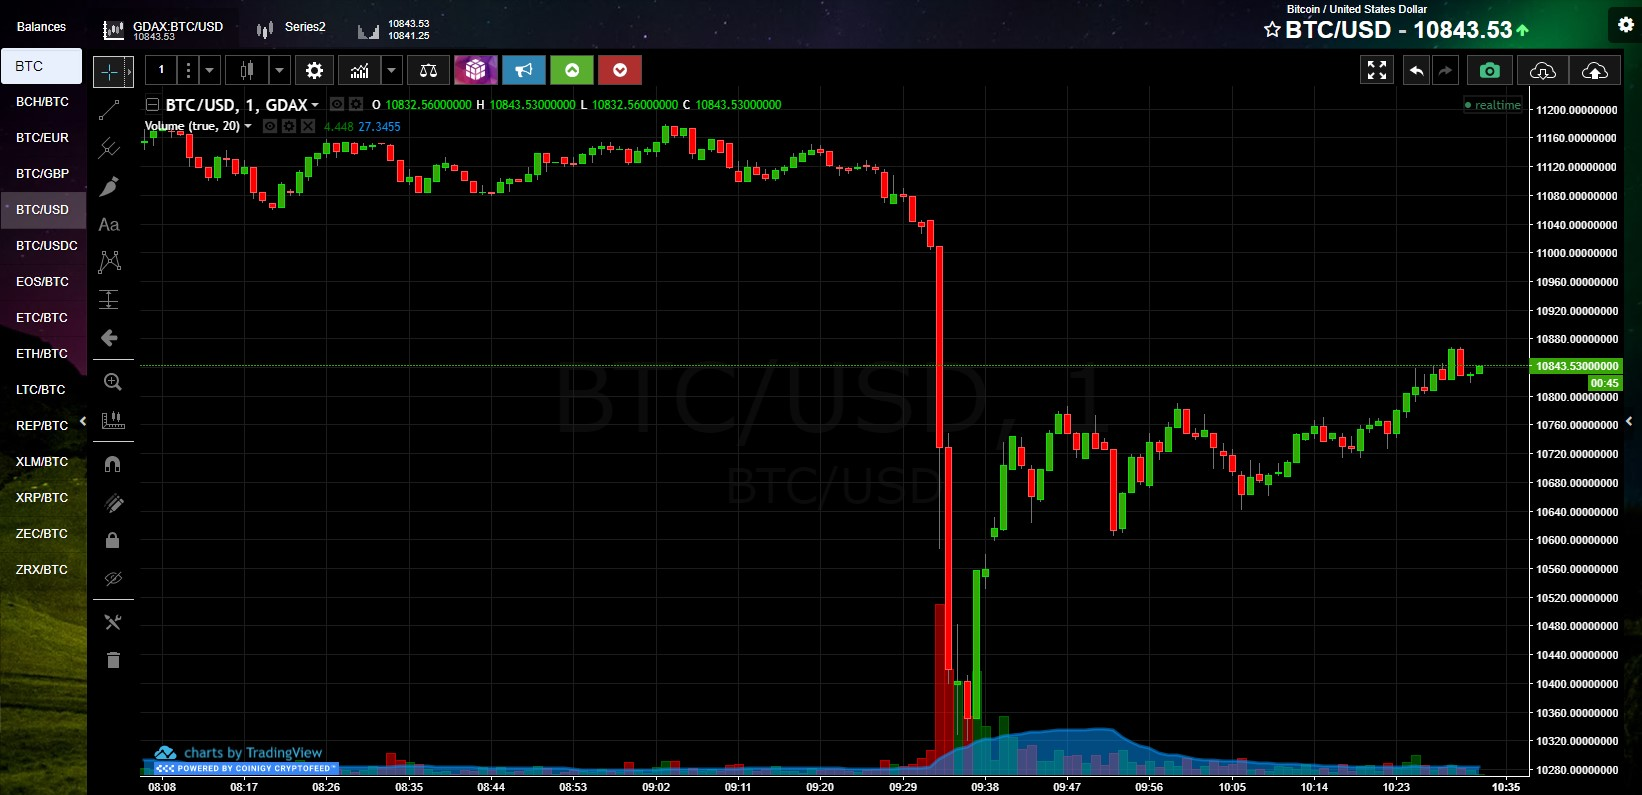 Bitcoin Price, one minute interval, drop from $11,200 to $10,300